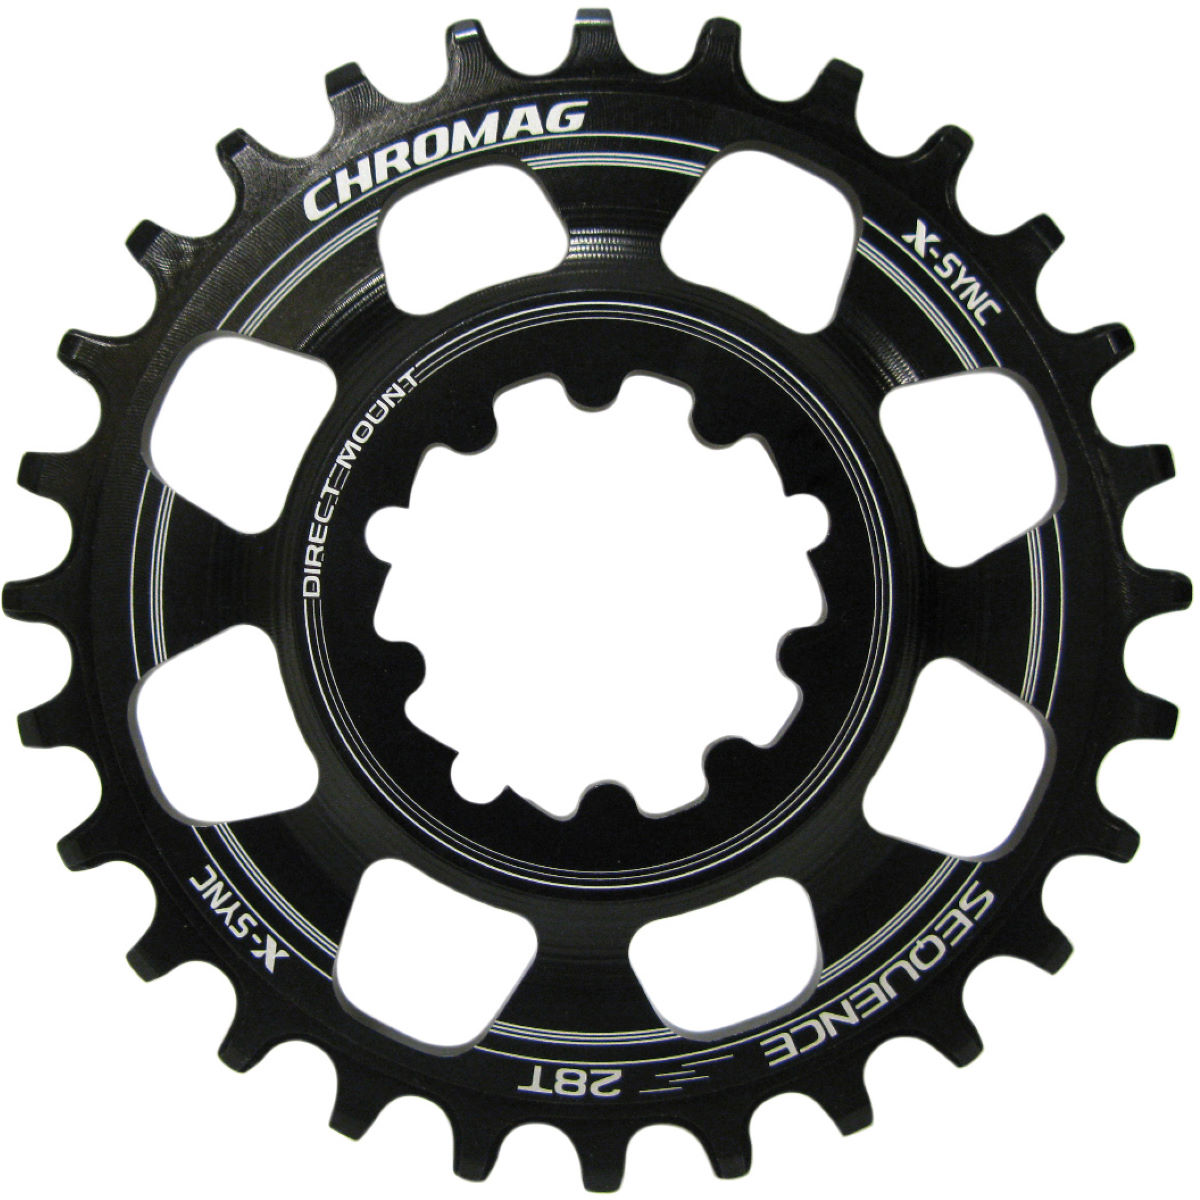 Chromag Chromag Sequence GXP Direct Mount Chainring   Chain Rings